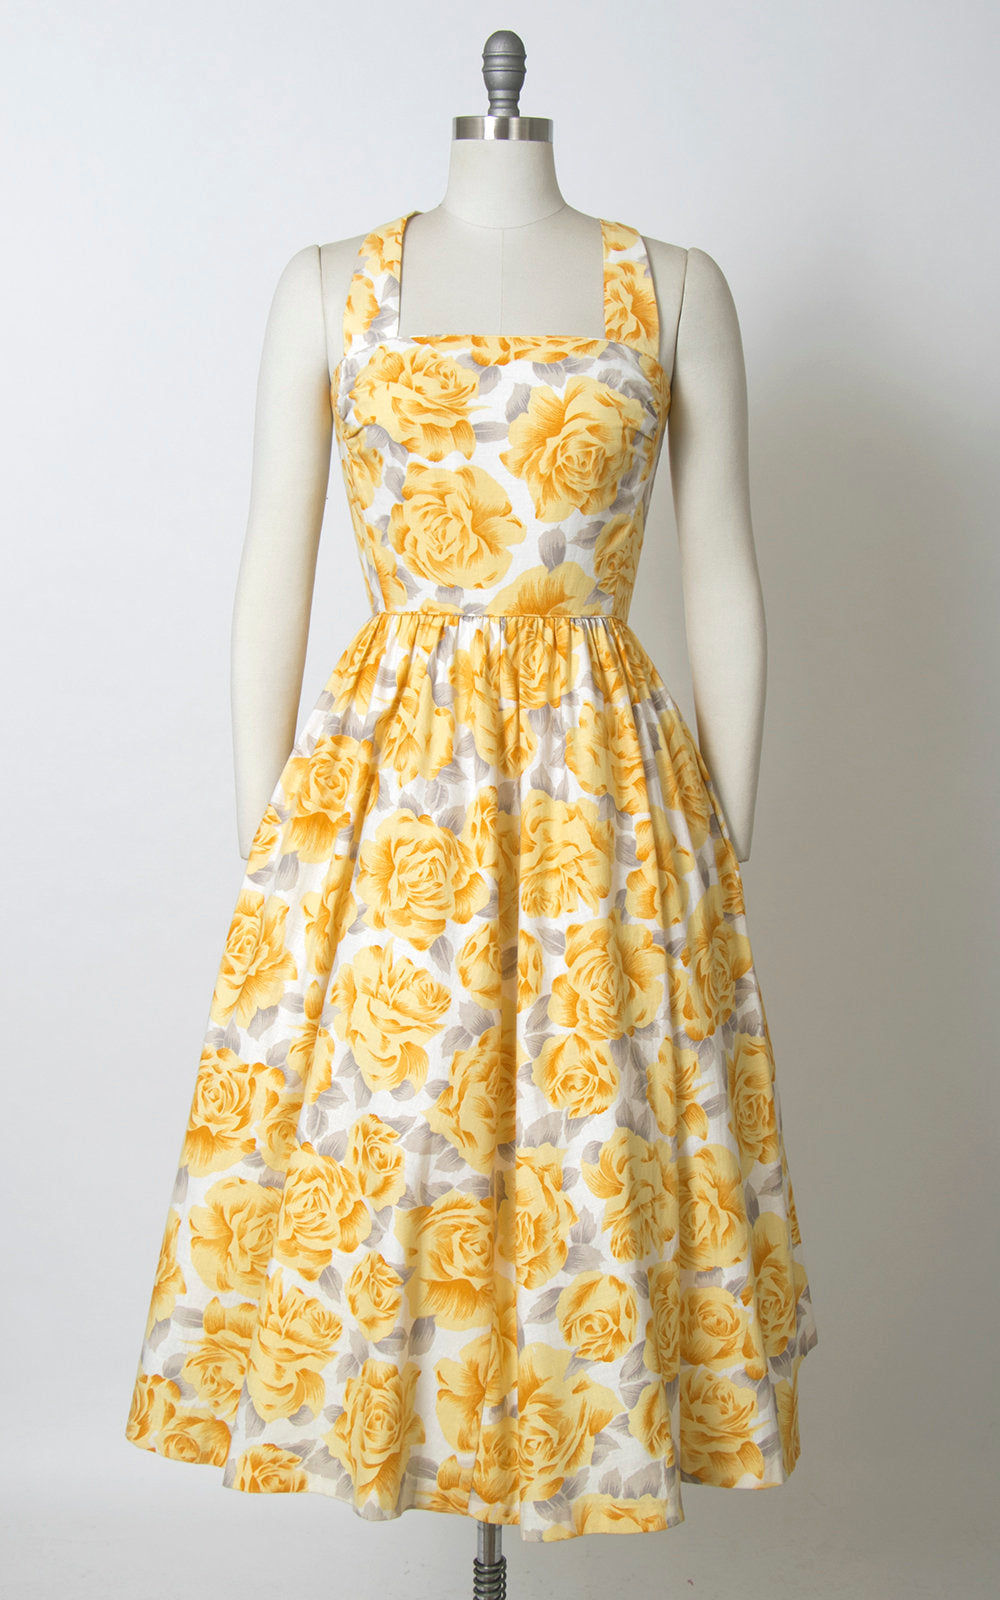 Vintage 1980s does 50s Sundress | 80s LANZ Rose Floral Print Cotton Yellow White Midi Day Dress with Pockets (small)